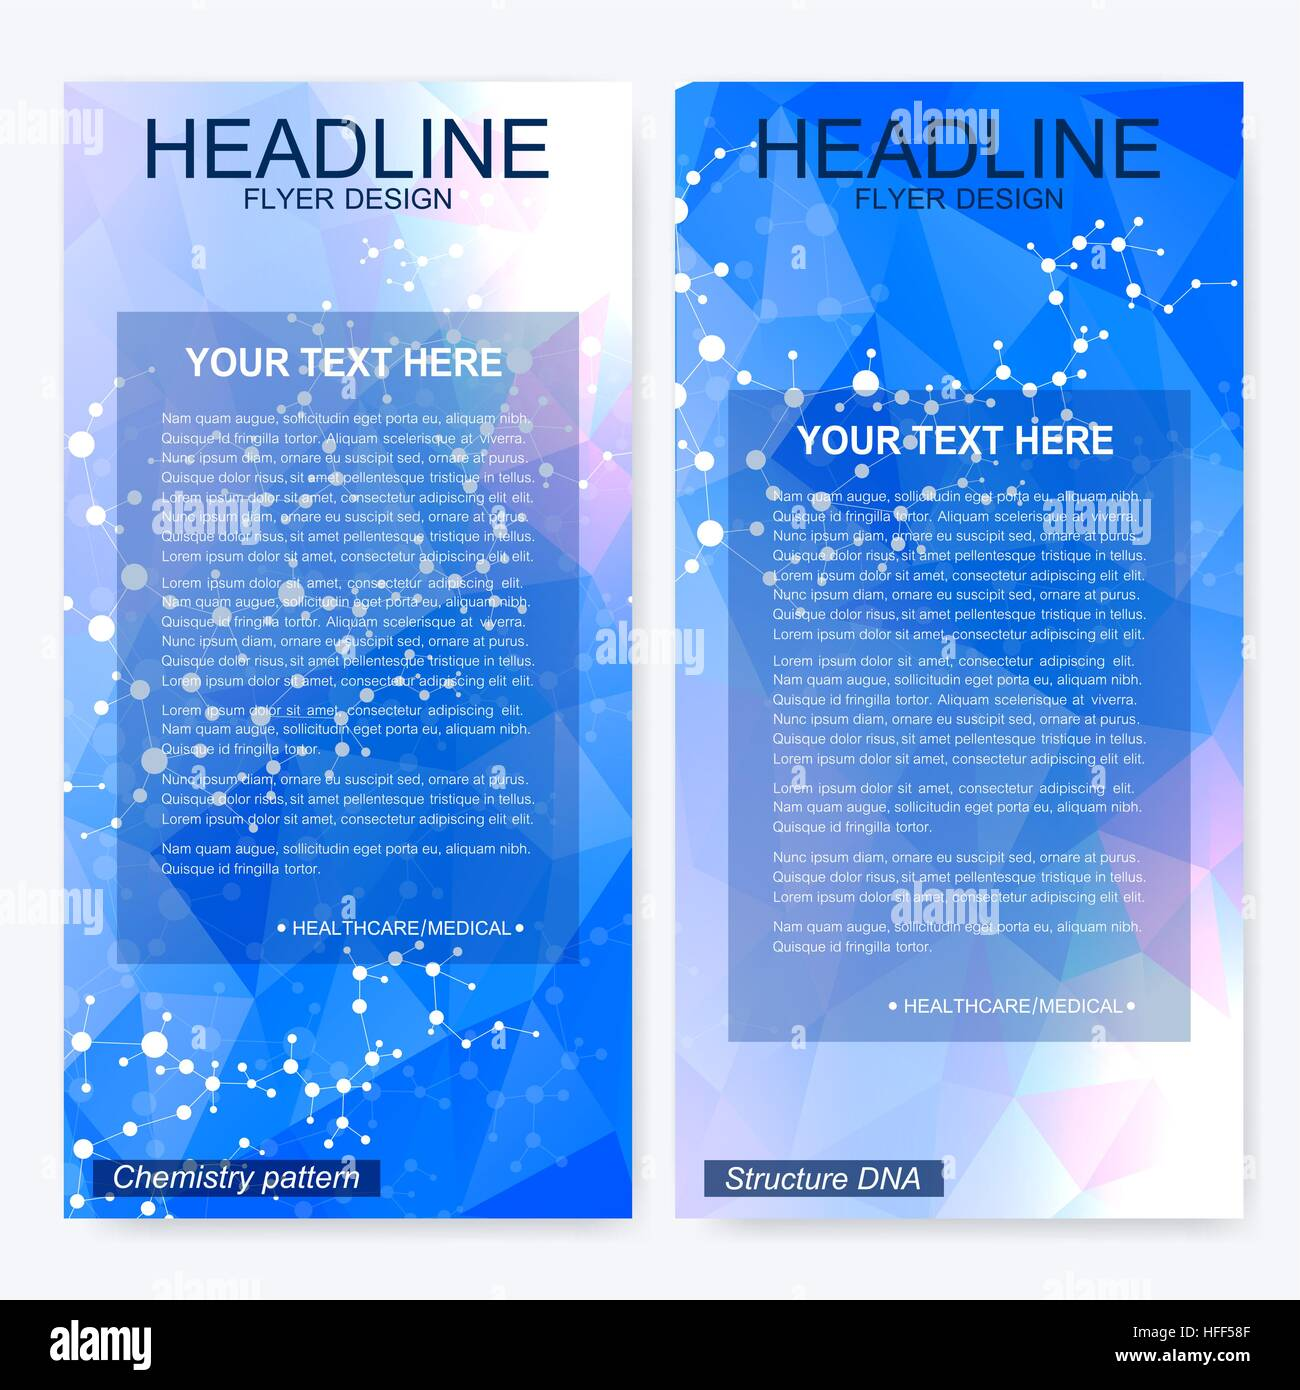 leaflet flyer layout magazine cover corporate identity template science and technology design structure dna chemistry medical background business and